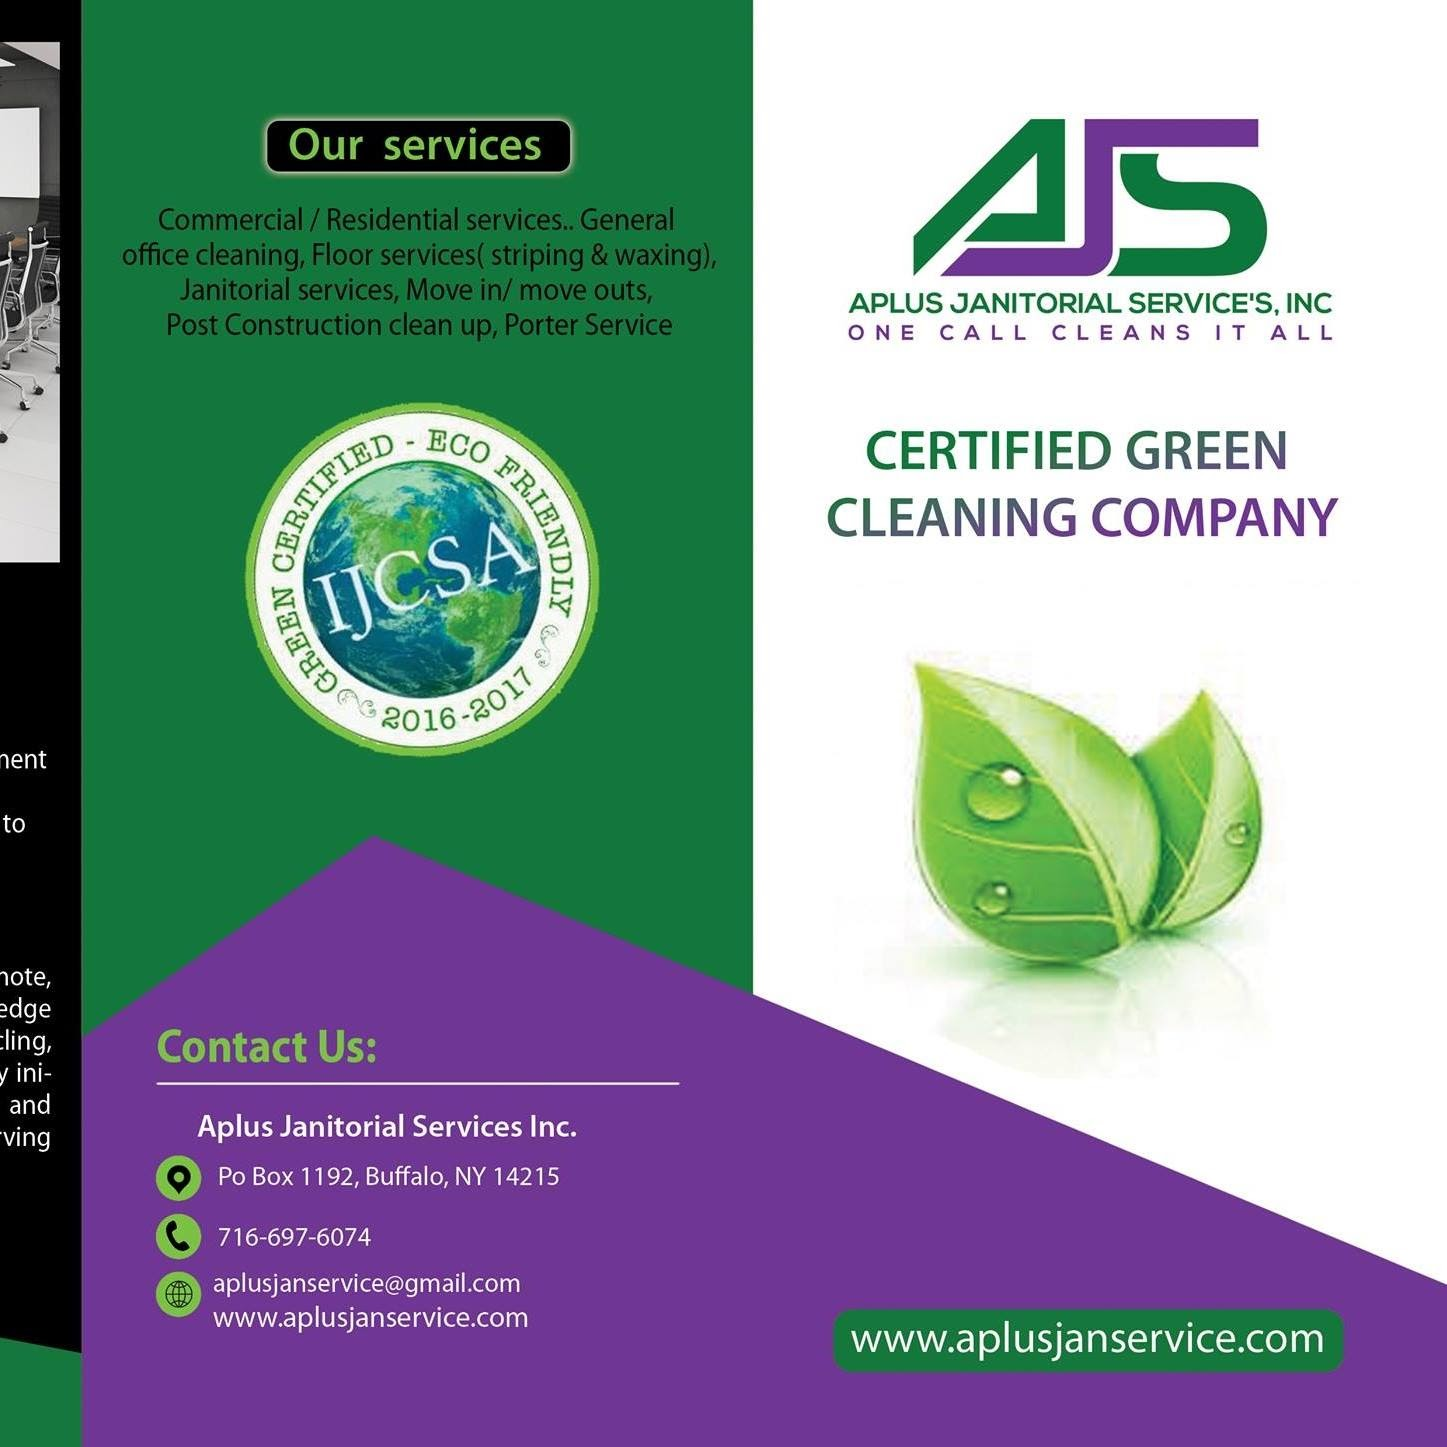 Aplus Janitorial Services - cover photo